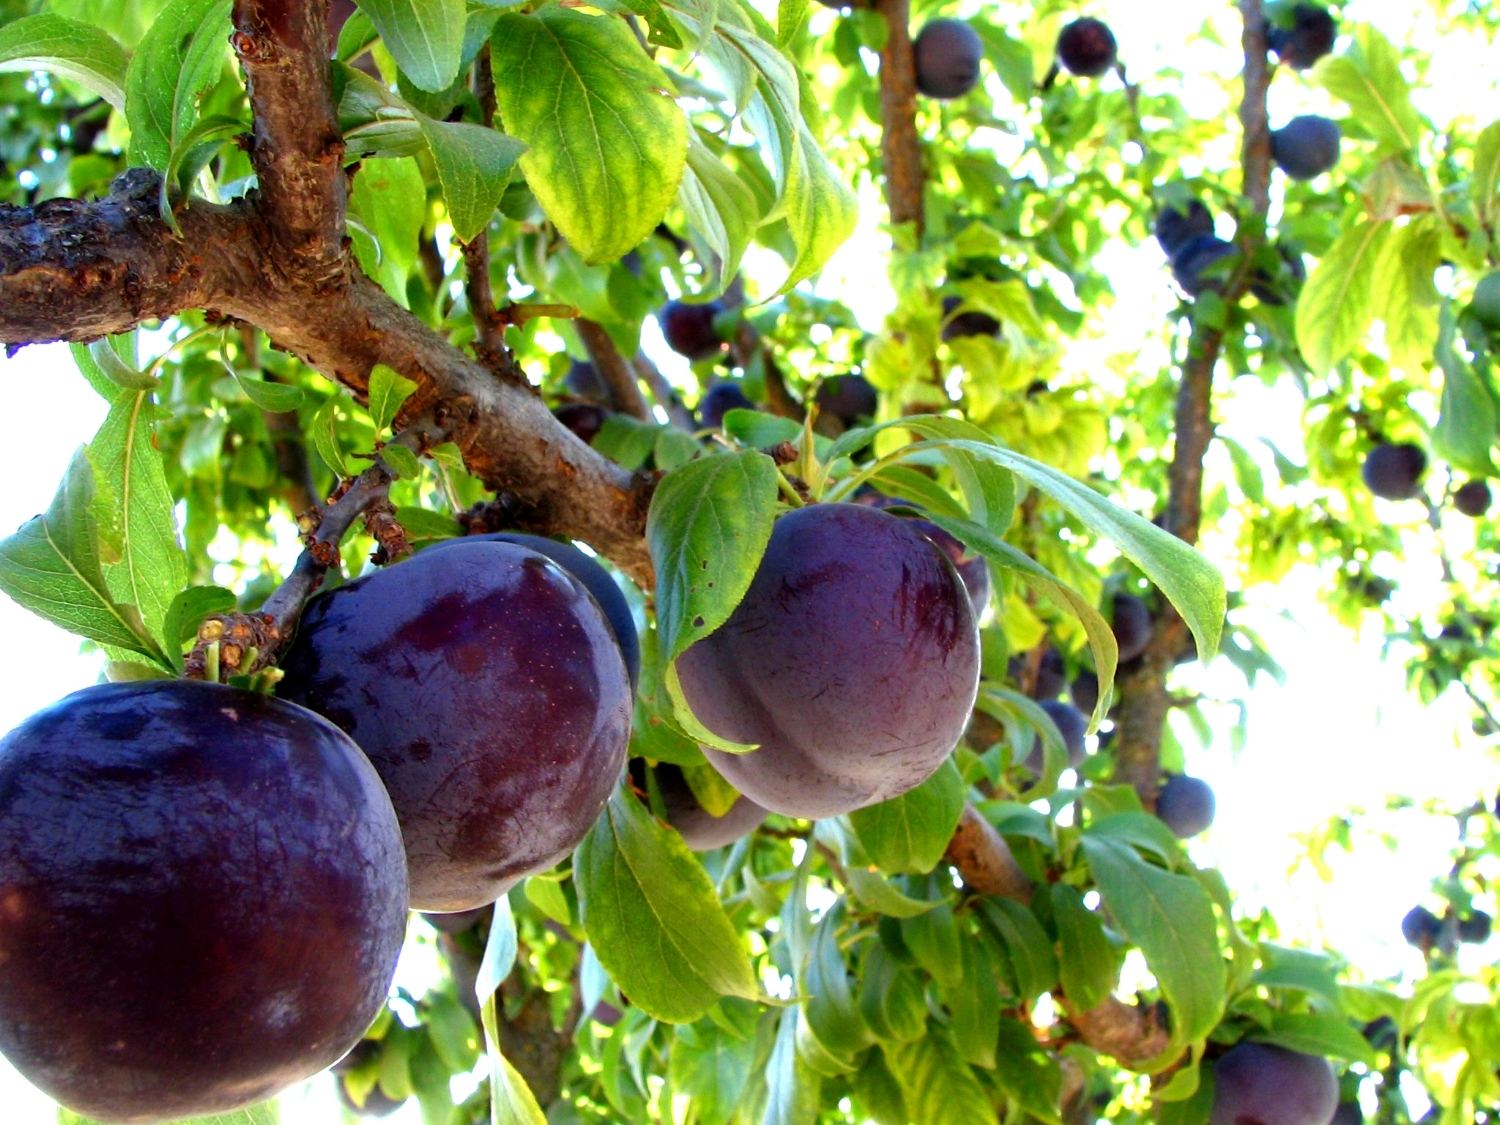 Black plums ready for harvest.